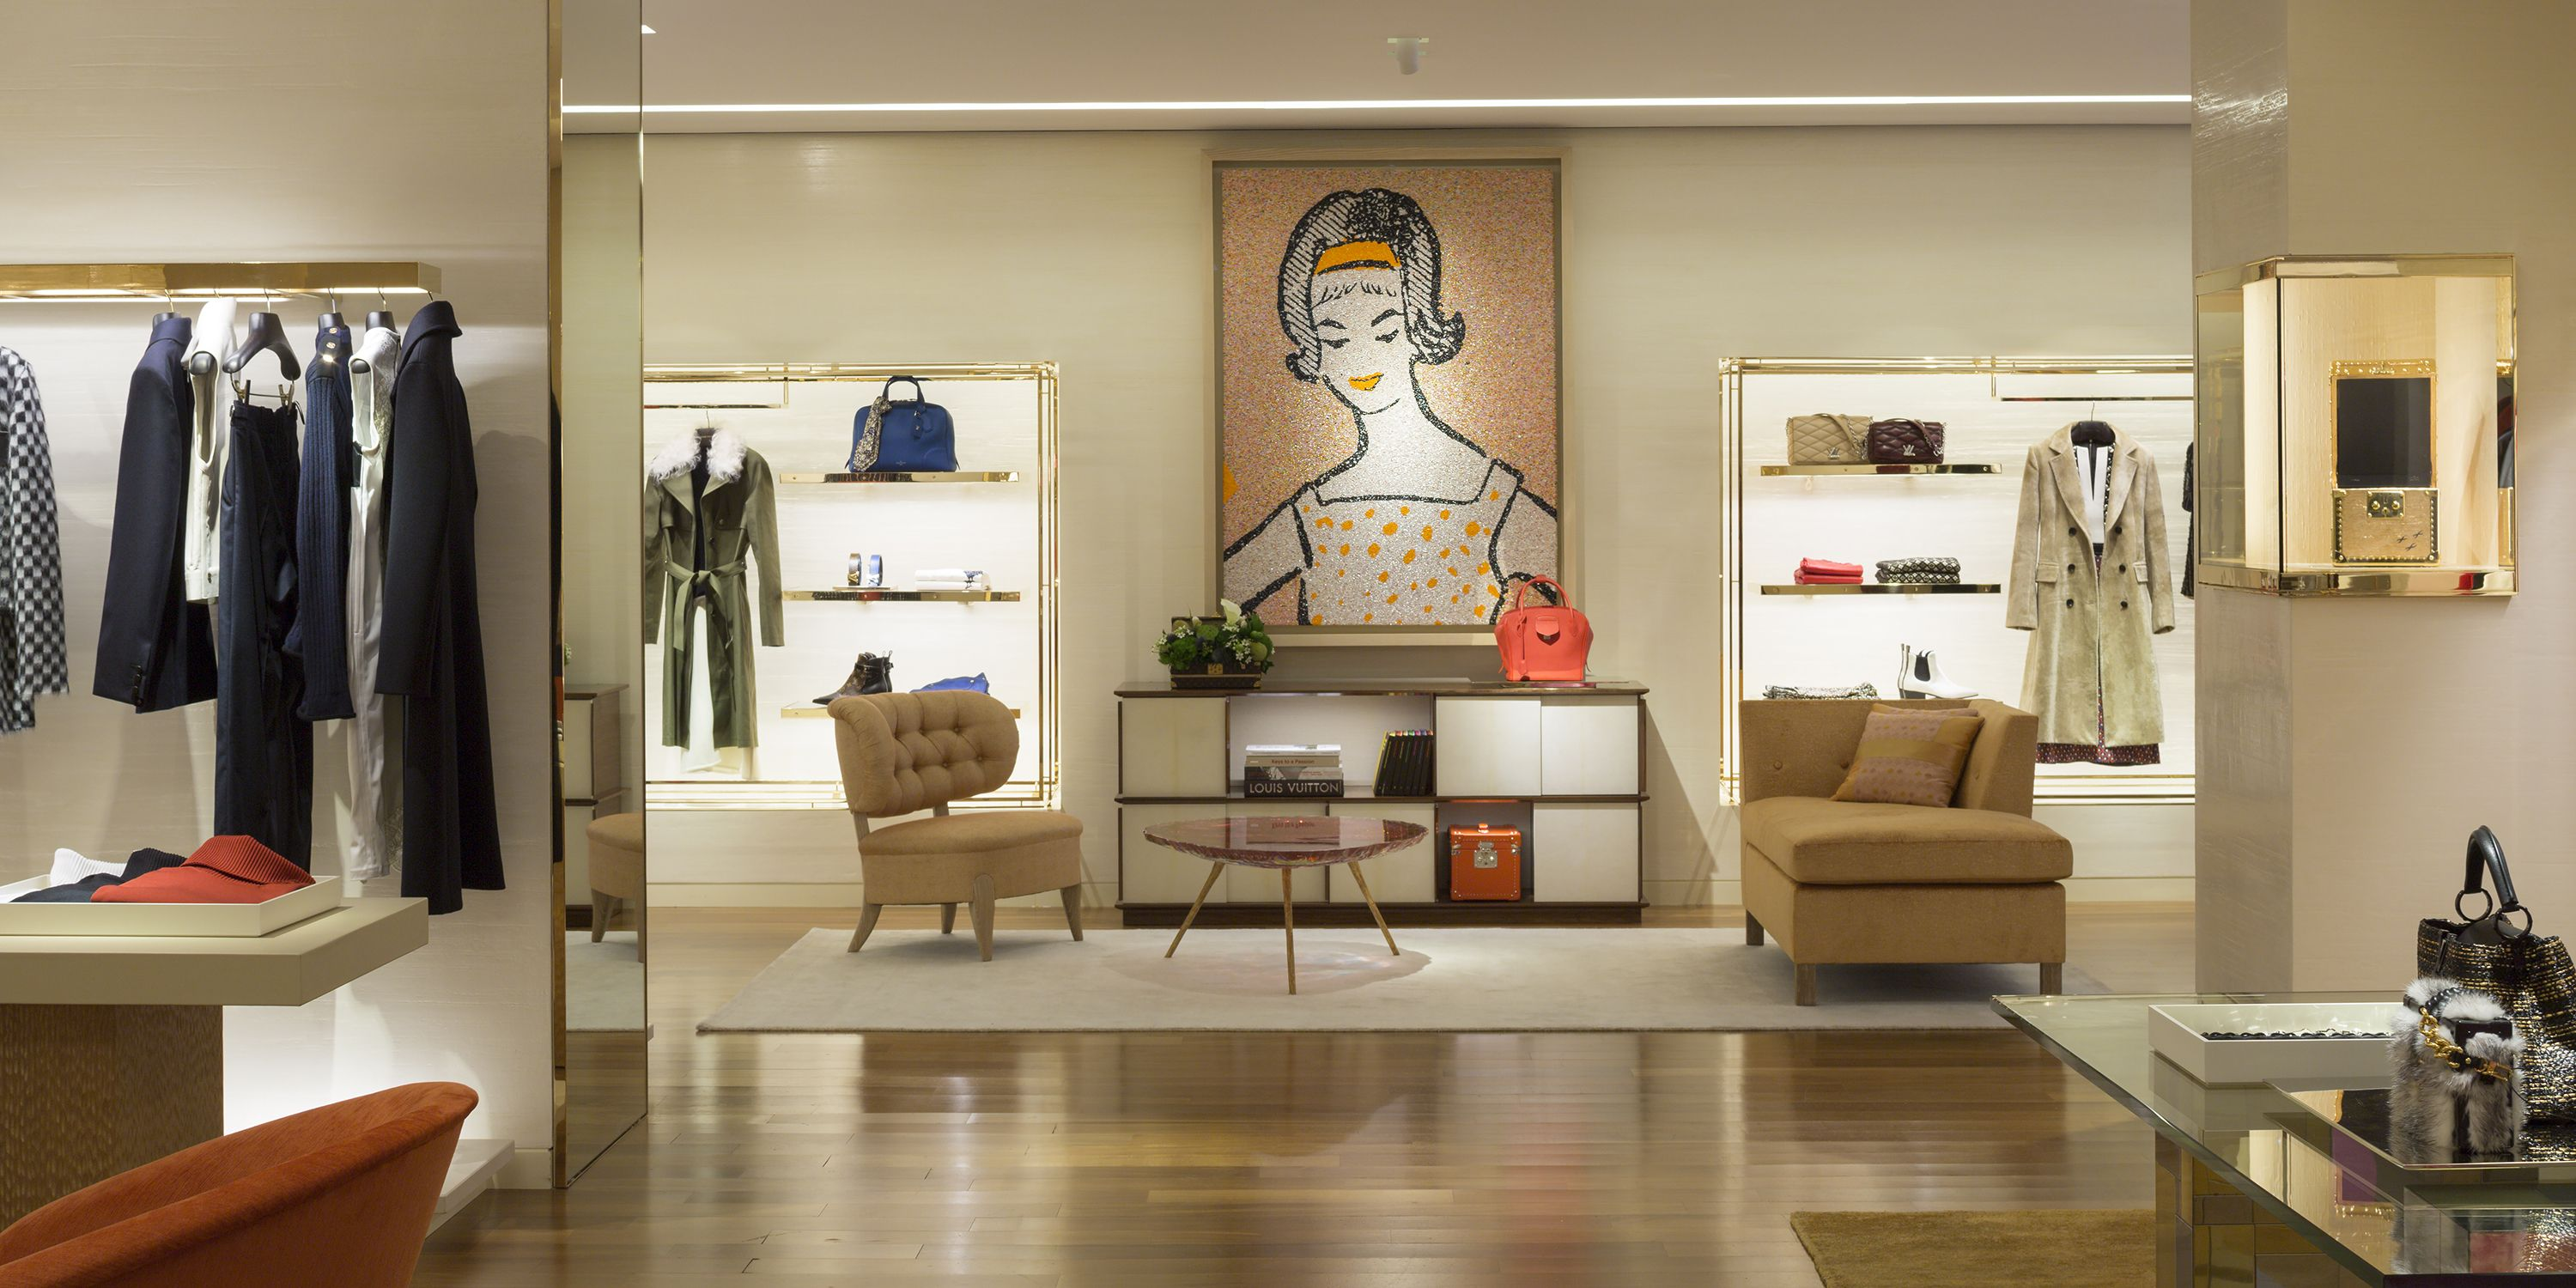 Inside Louis Vuittons New 5th Ave Maison The Home Of Vuitton In Manhattan